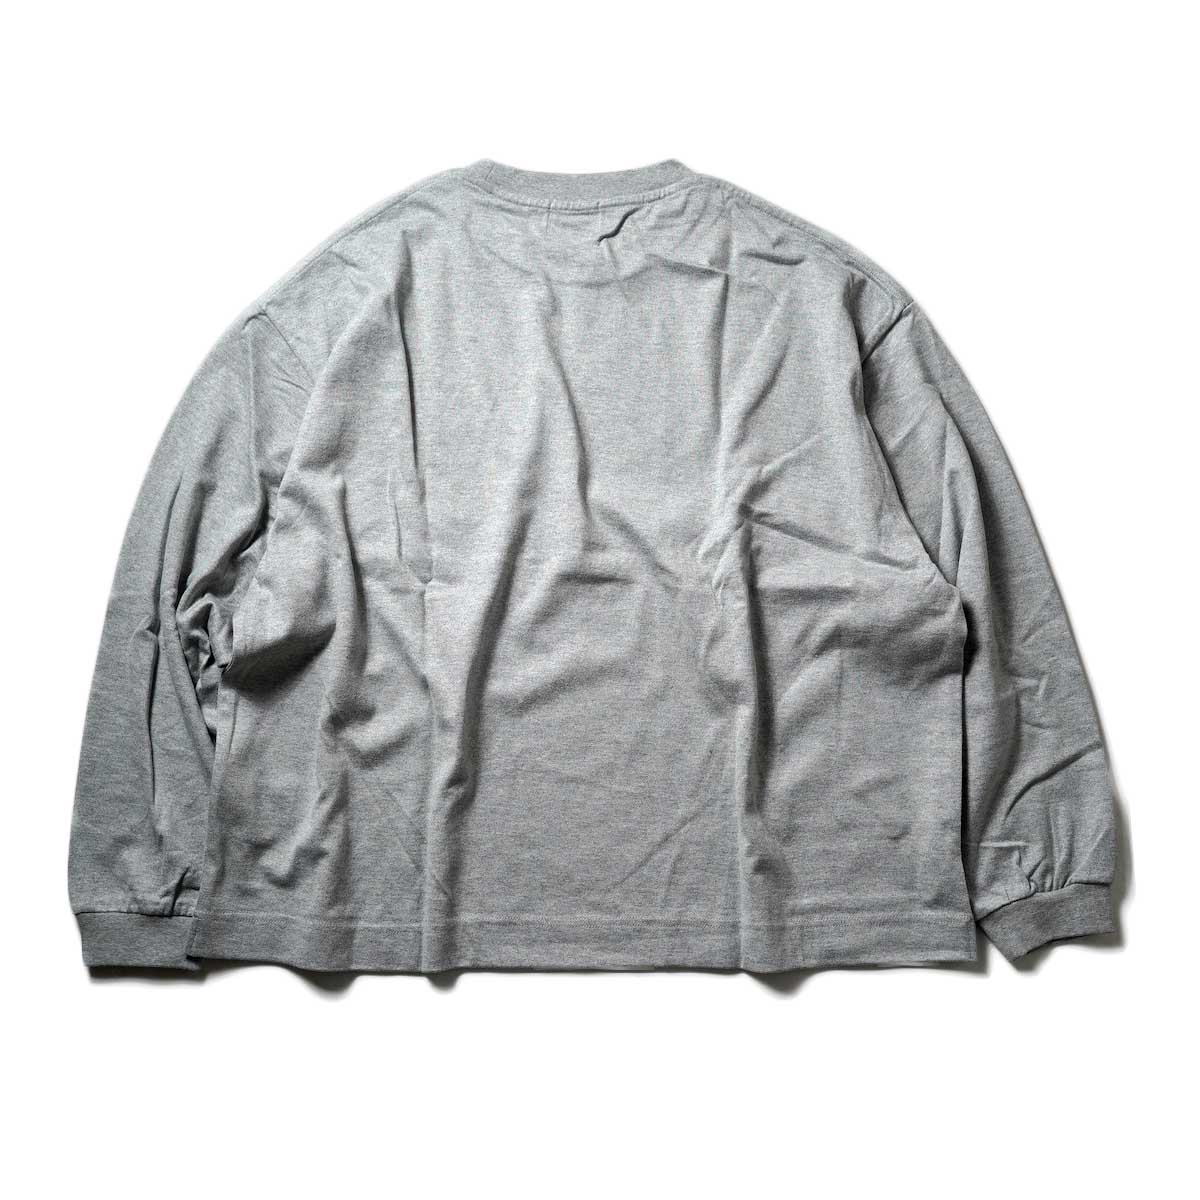 EVCON / WIDE L/S T-Shirt (Gray) 背面